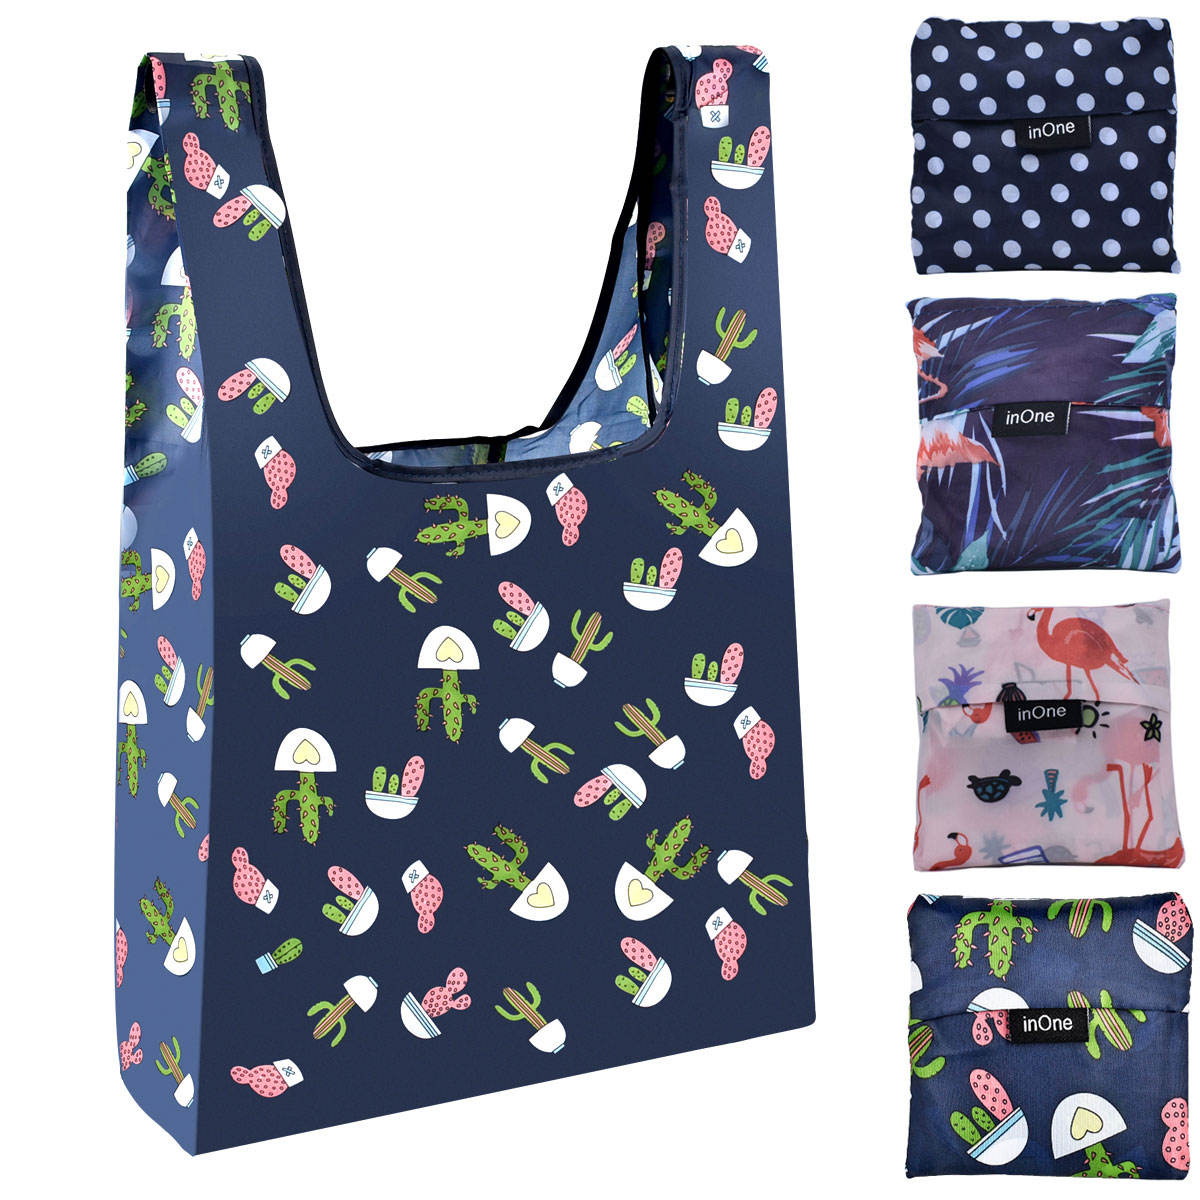 flamingo cactus polka dots customize pattern polyester portable recyclable eco grocery reusable foldable nylon shopping bag